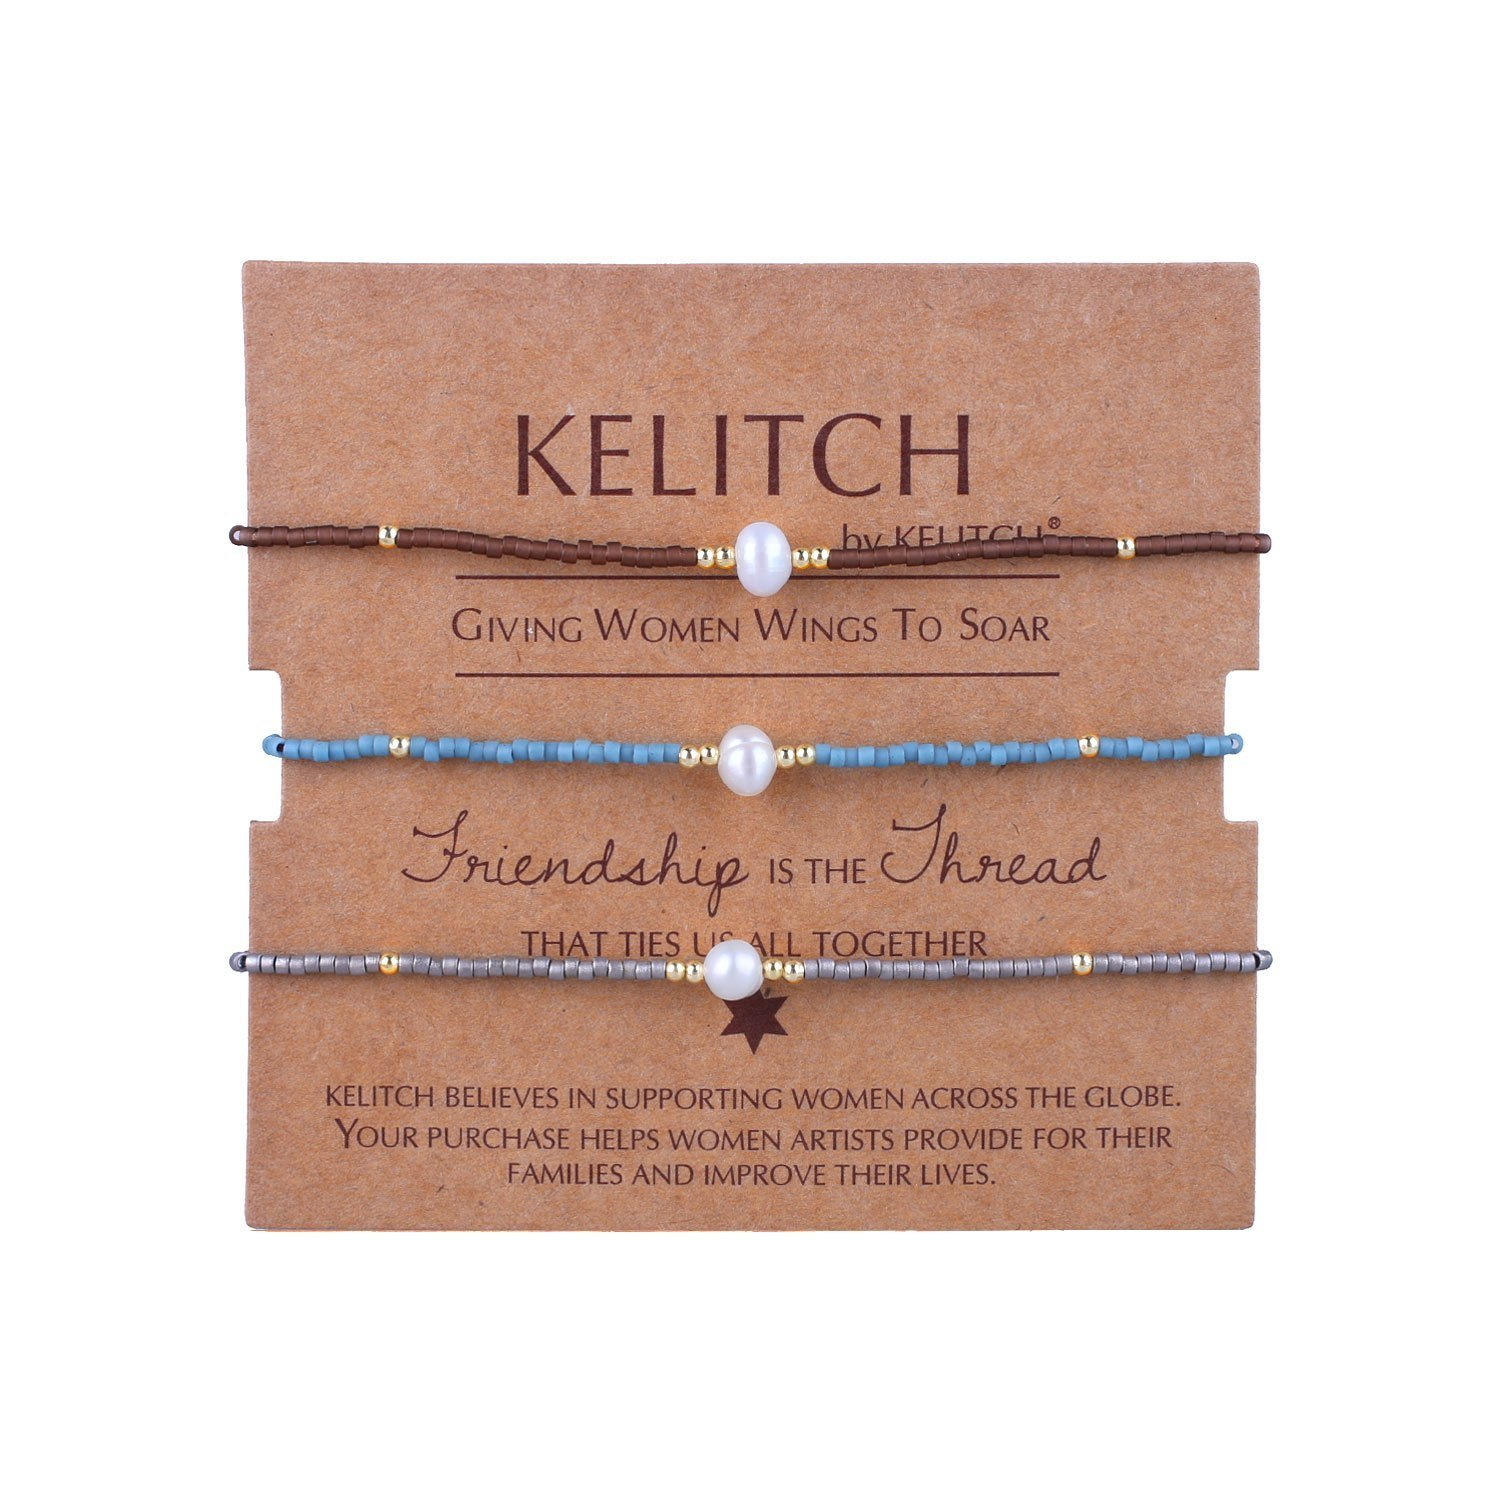 KELITCH 3 Pcs Shell Pearl Seed Beads Friendship Bracelets Handmade Adjustable String Bracelet